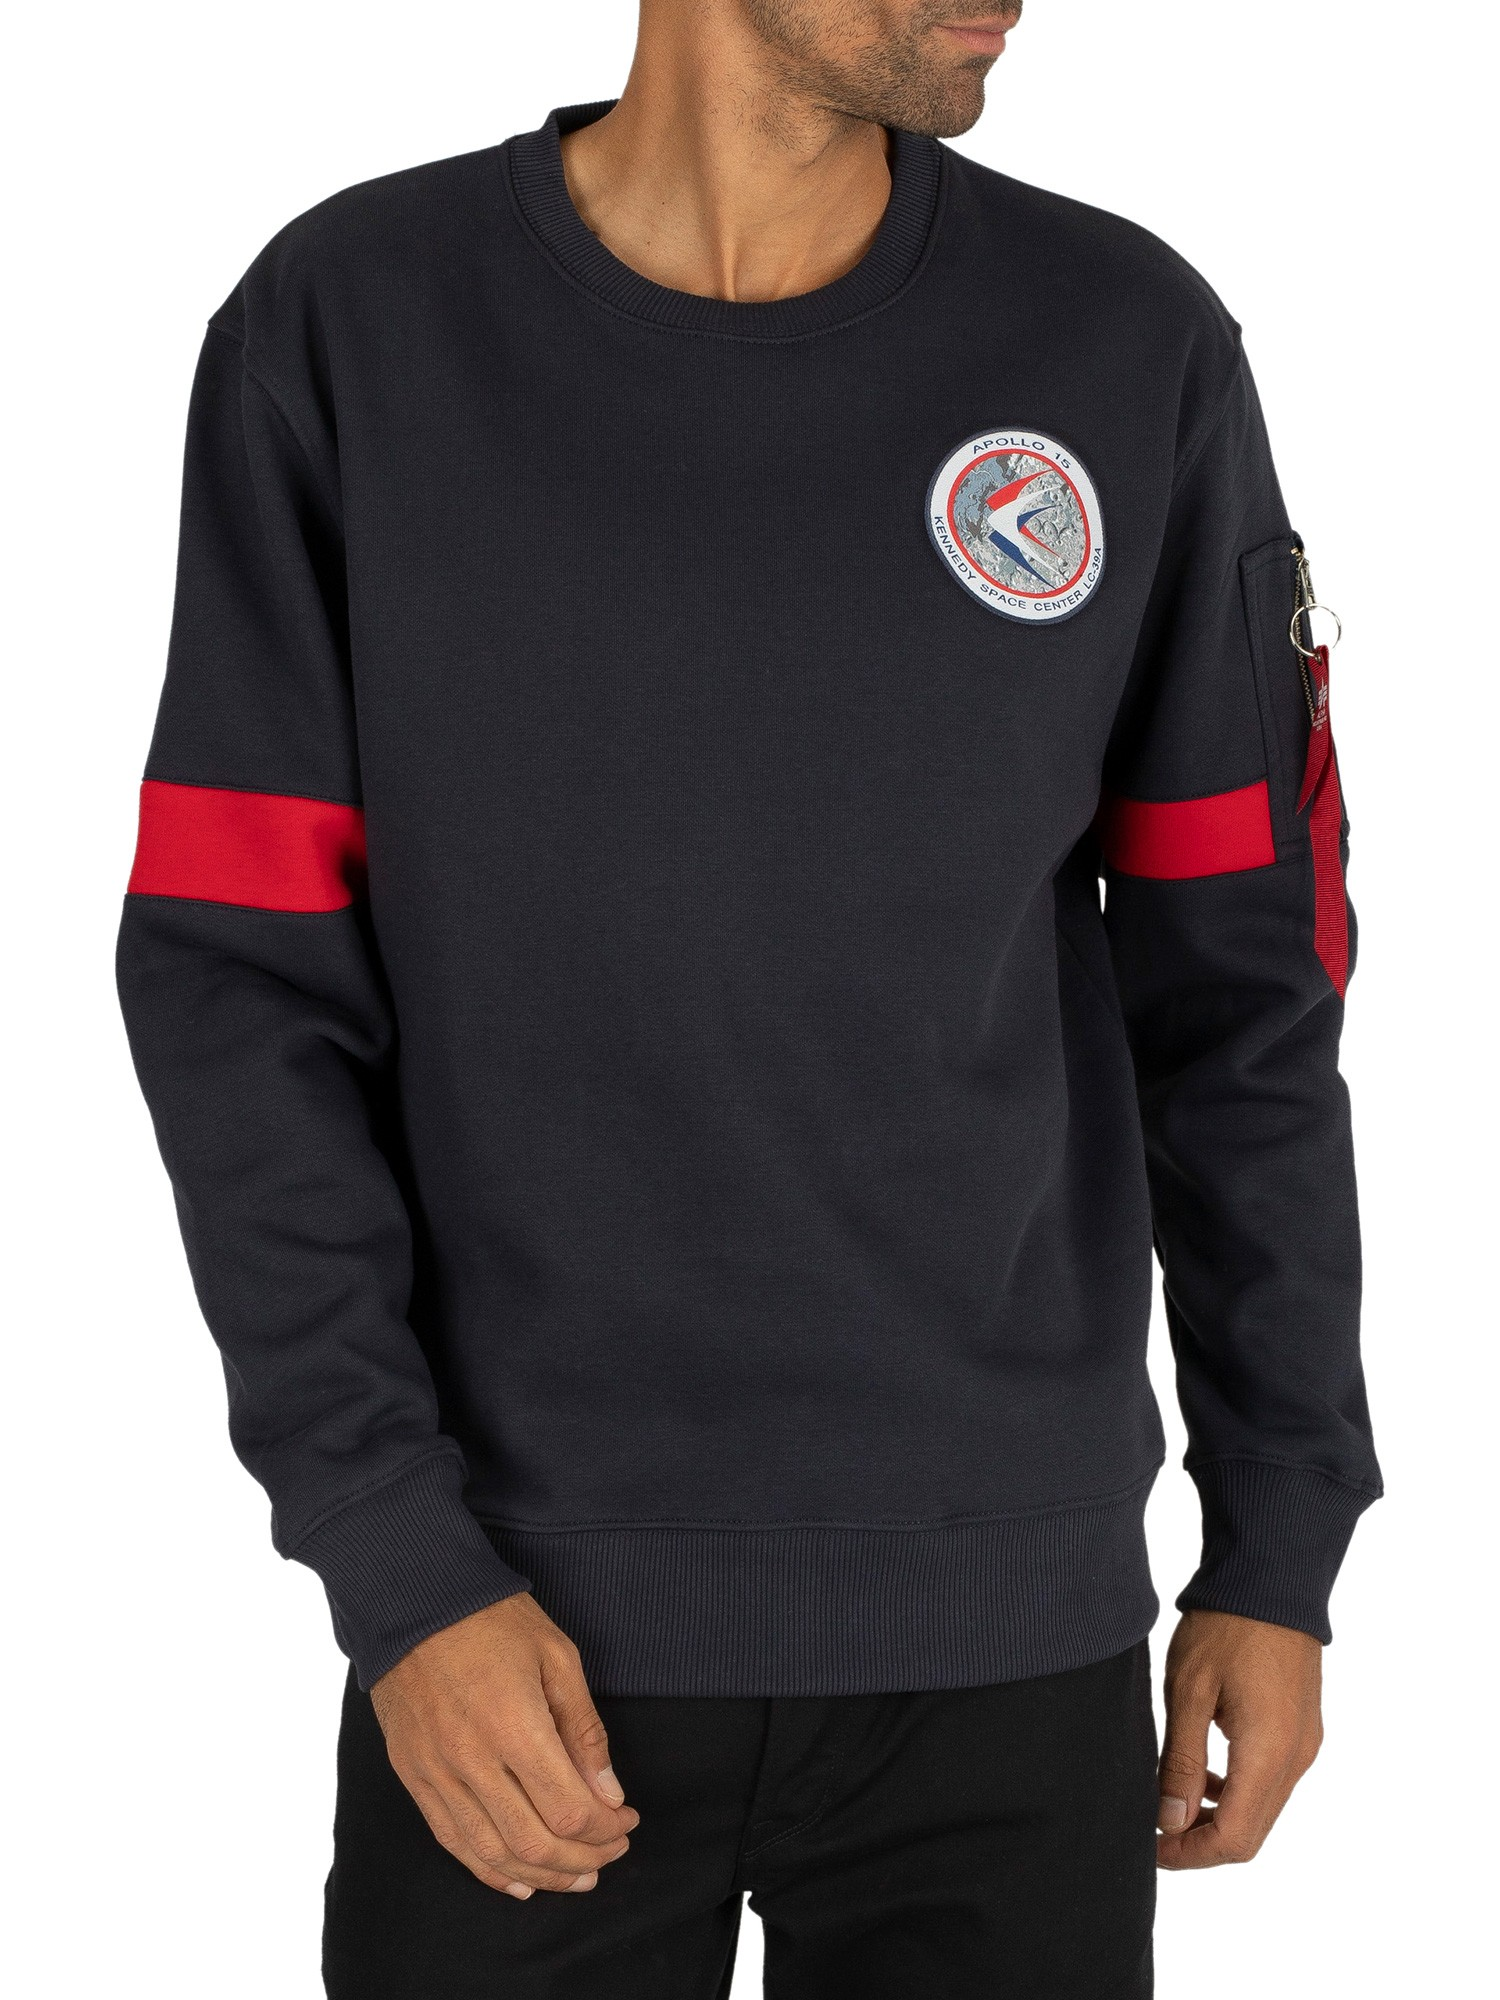 buy online f74af 128fe Alpha Industries Apollo 15 Sweatshirt - Rep Blue